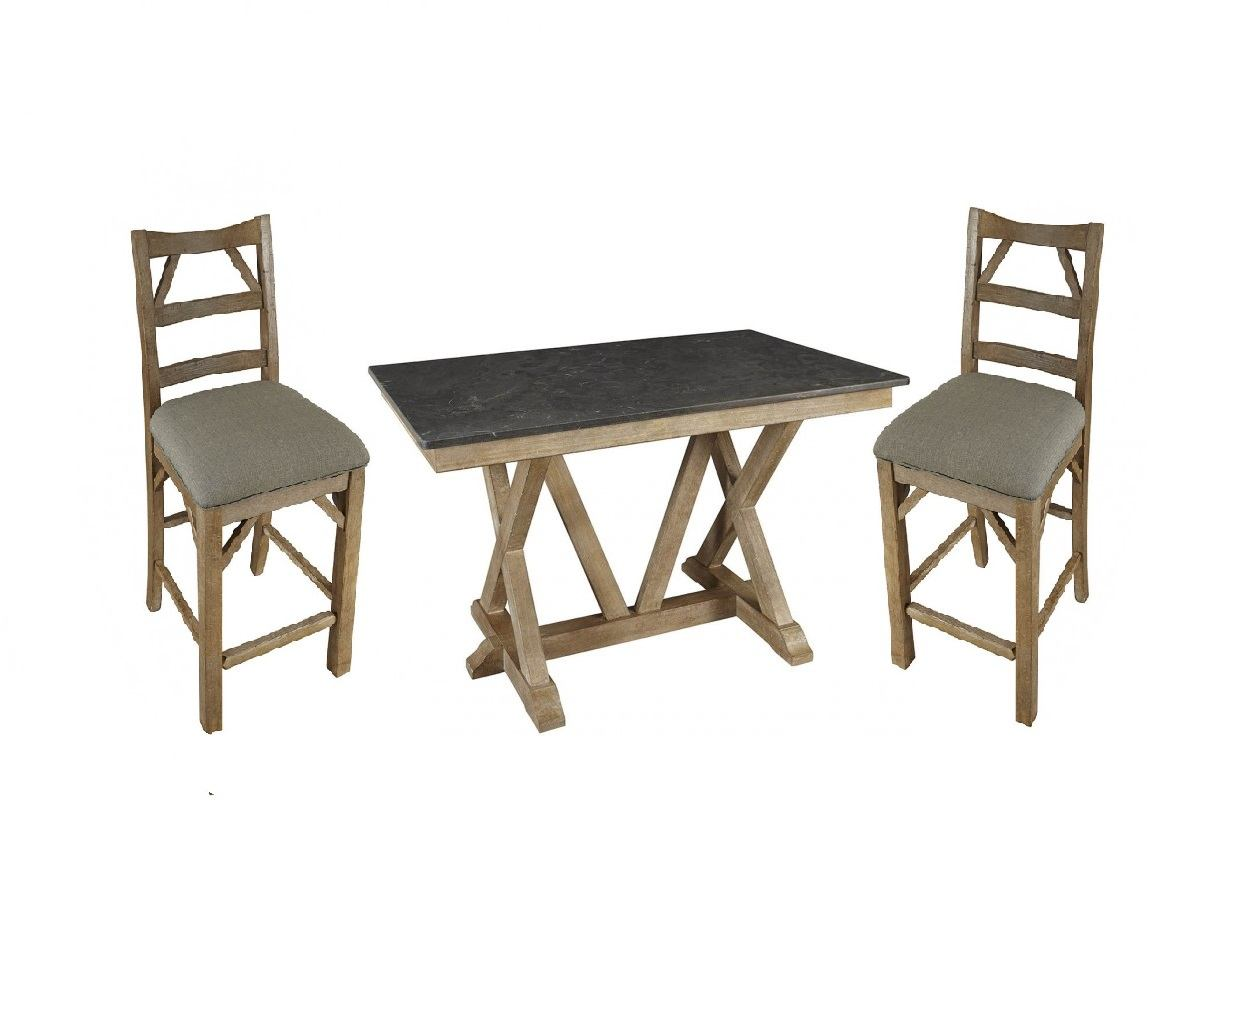 A-America West Valley 5pc Trestle Gathering Height Dining Set in Rustic Wheat